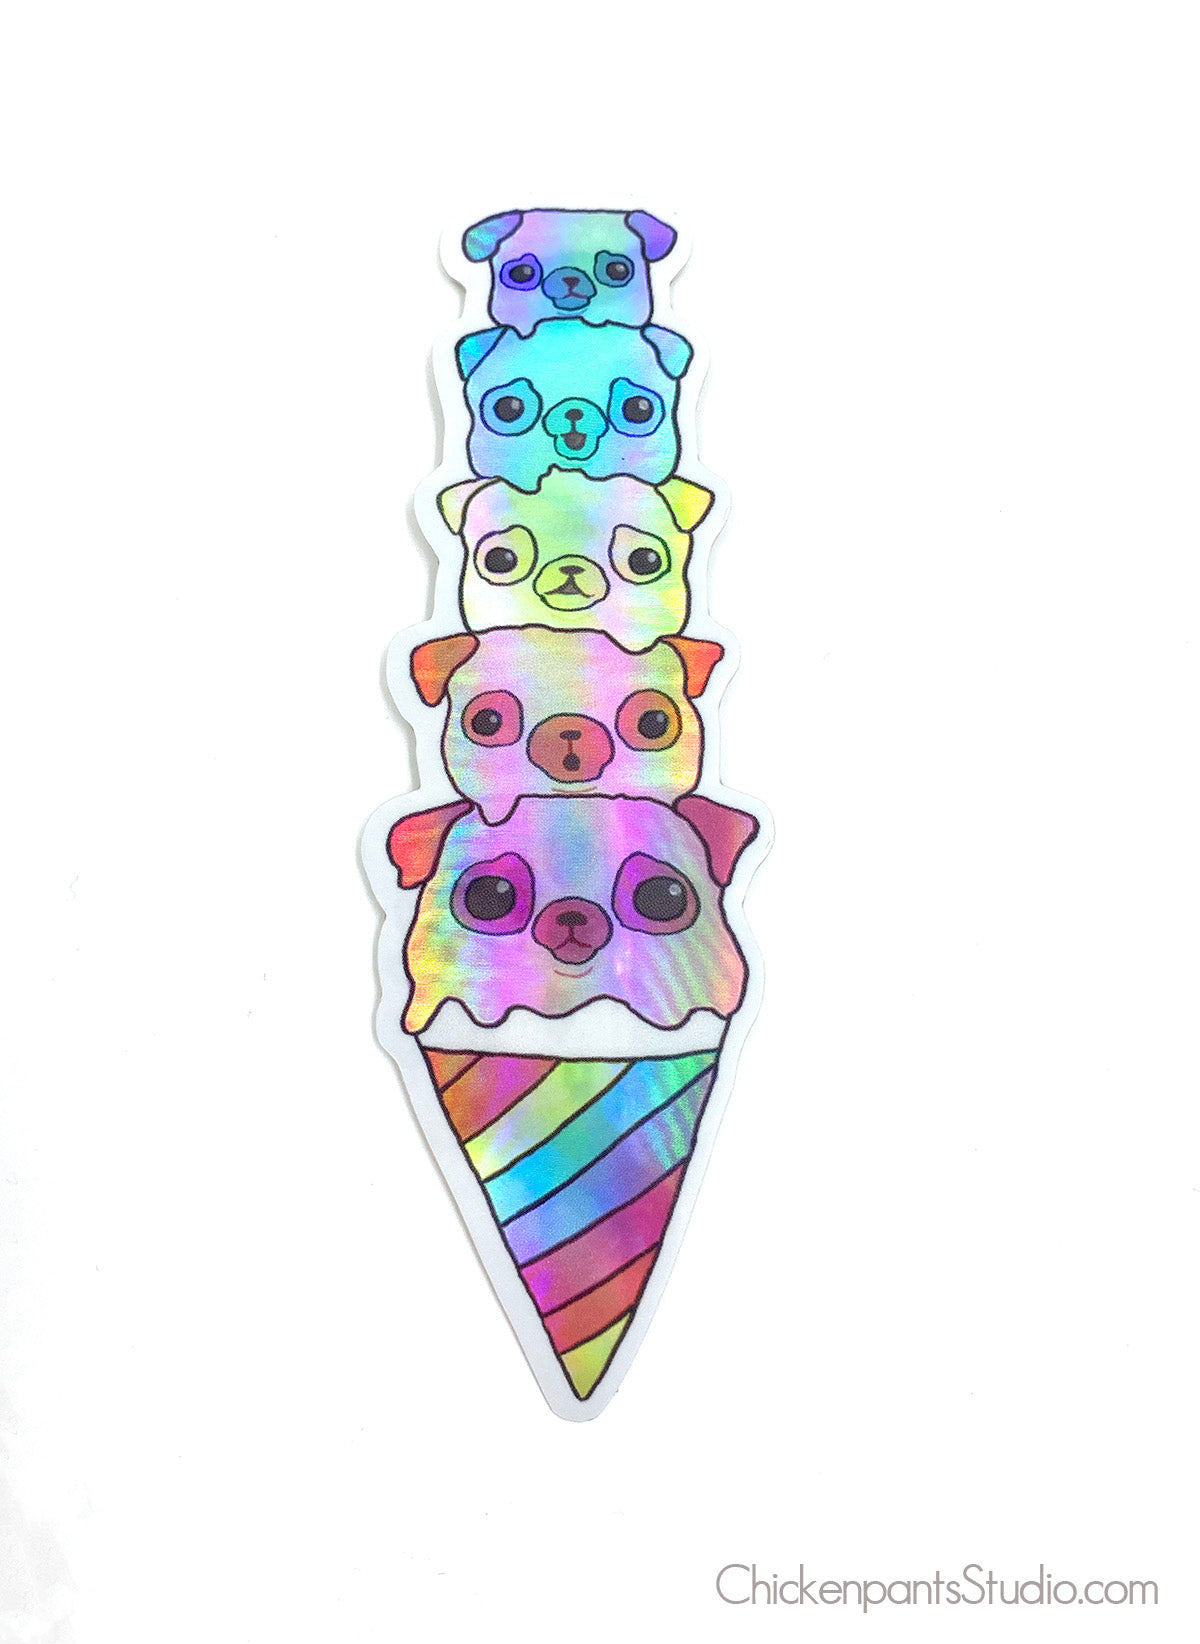 Ice Cream Cone Pugs Holographic Sticker